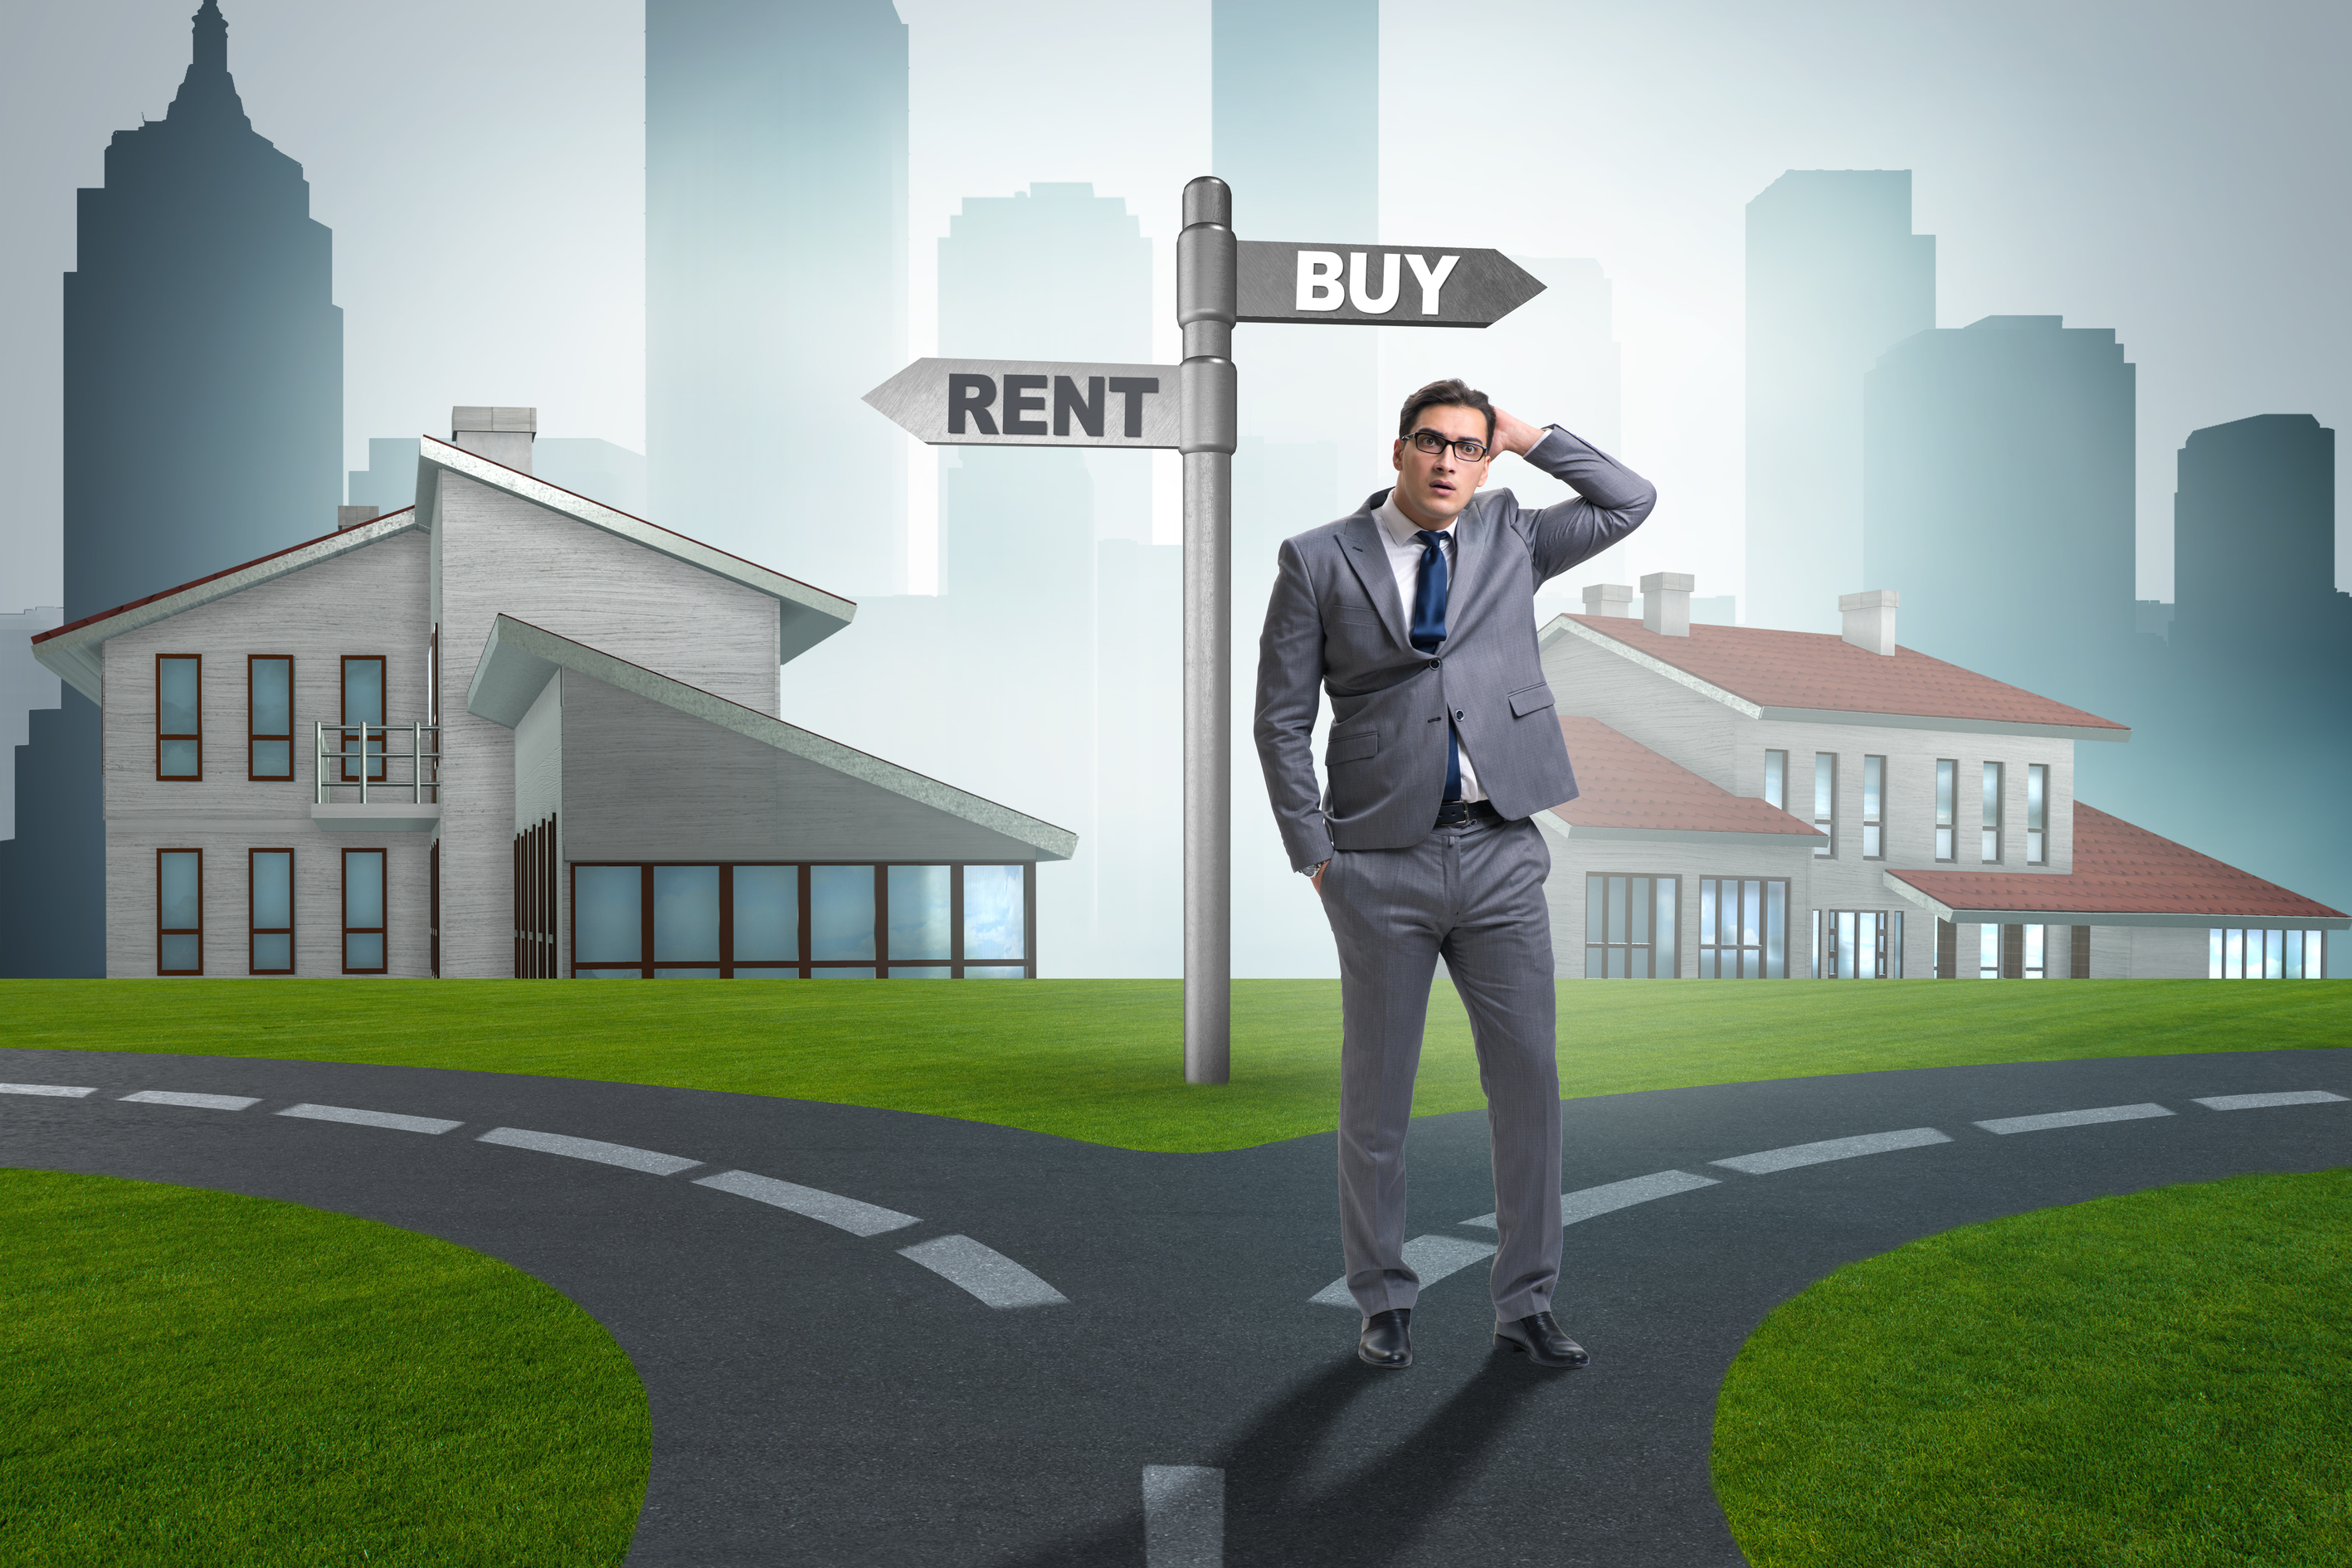 Renting versus Buying - Is Now the Time to Buy?